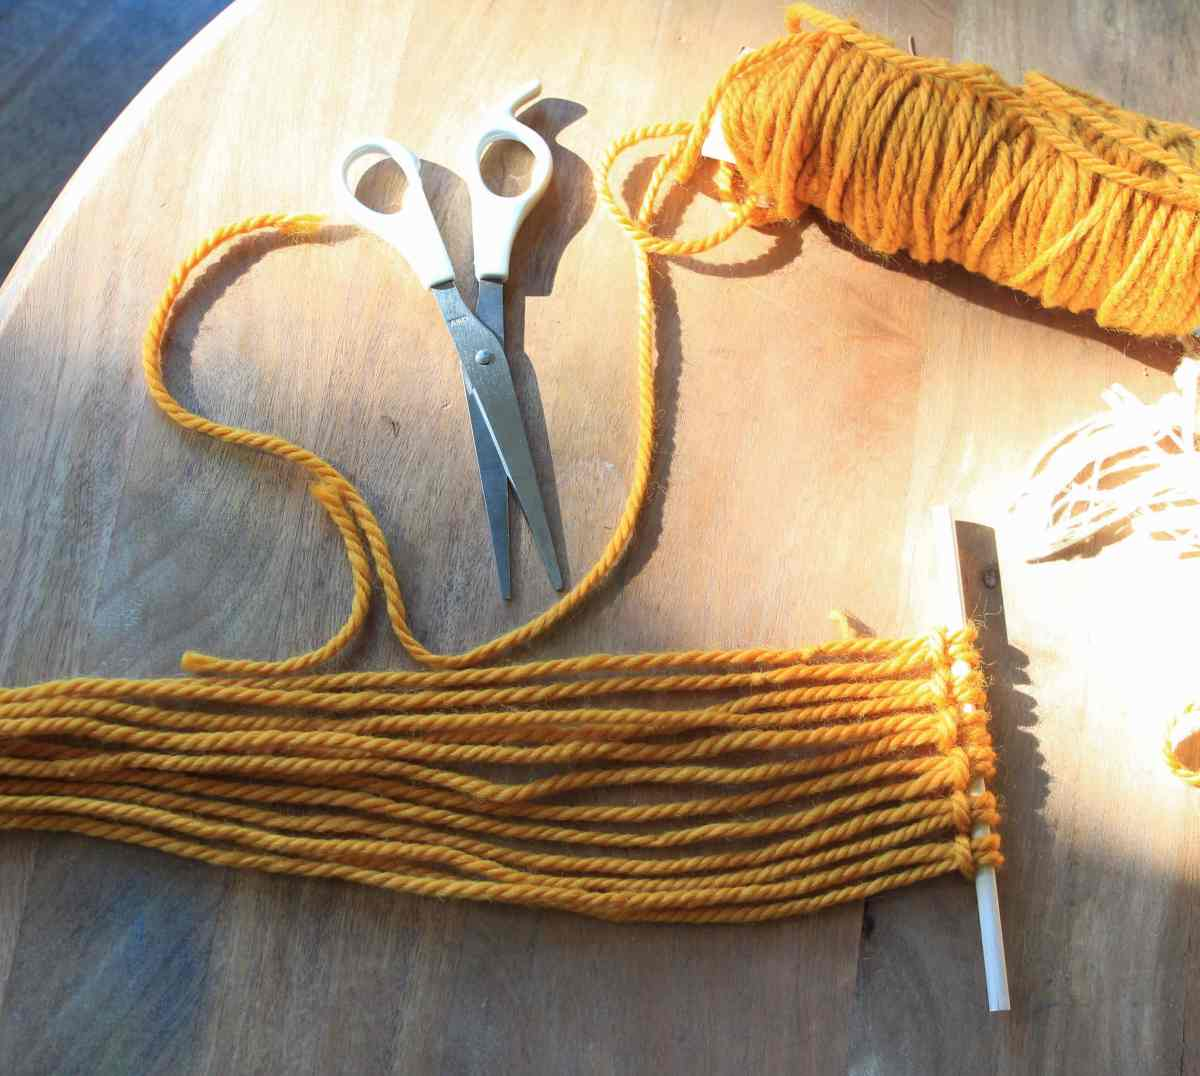 scissors next to yellow yarn and macrame project.